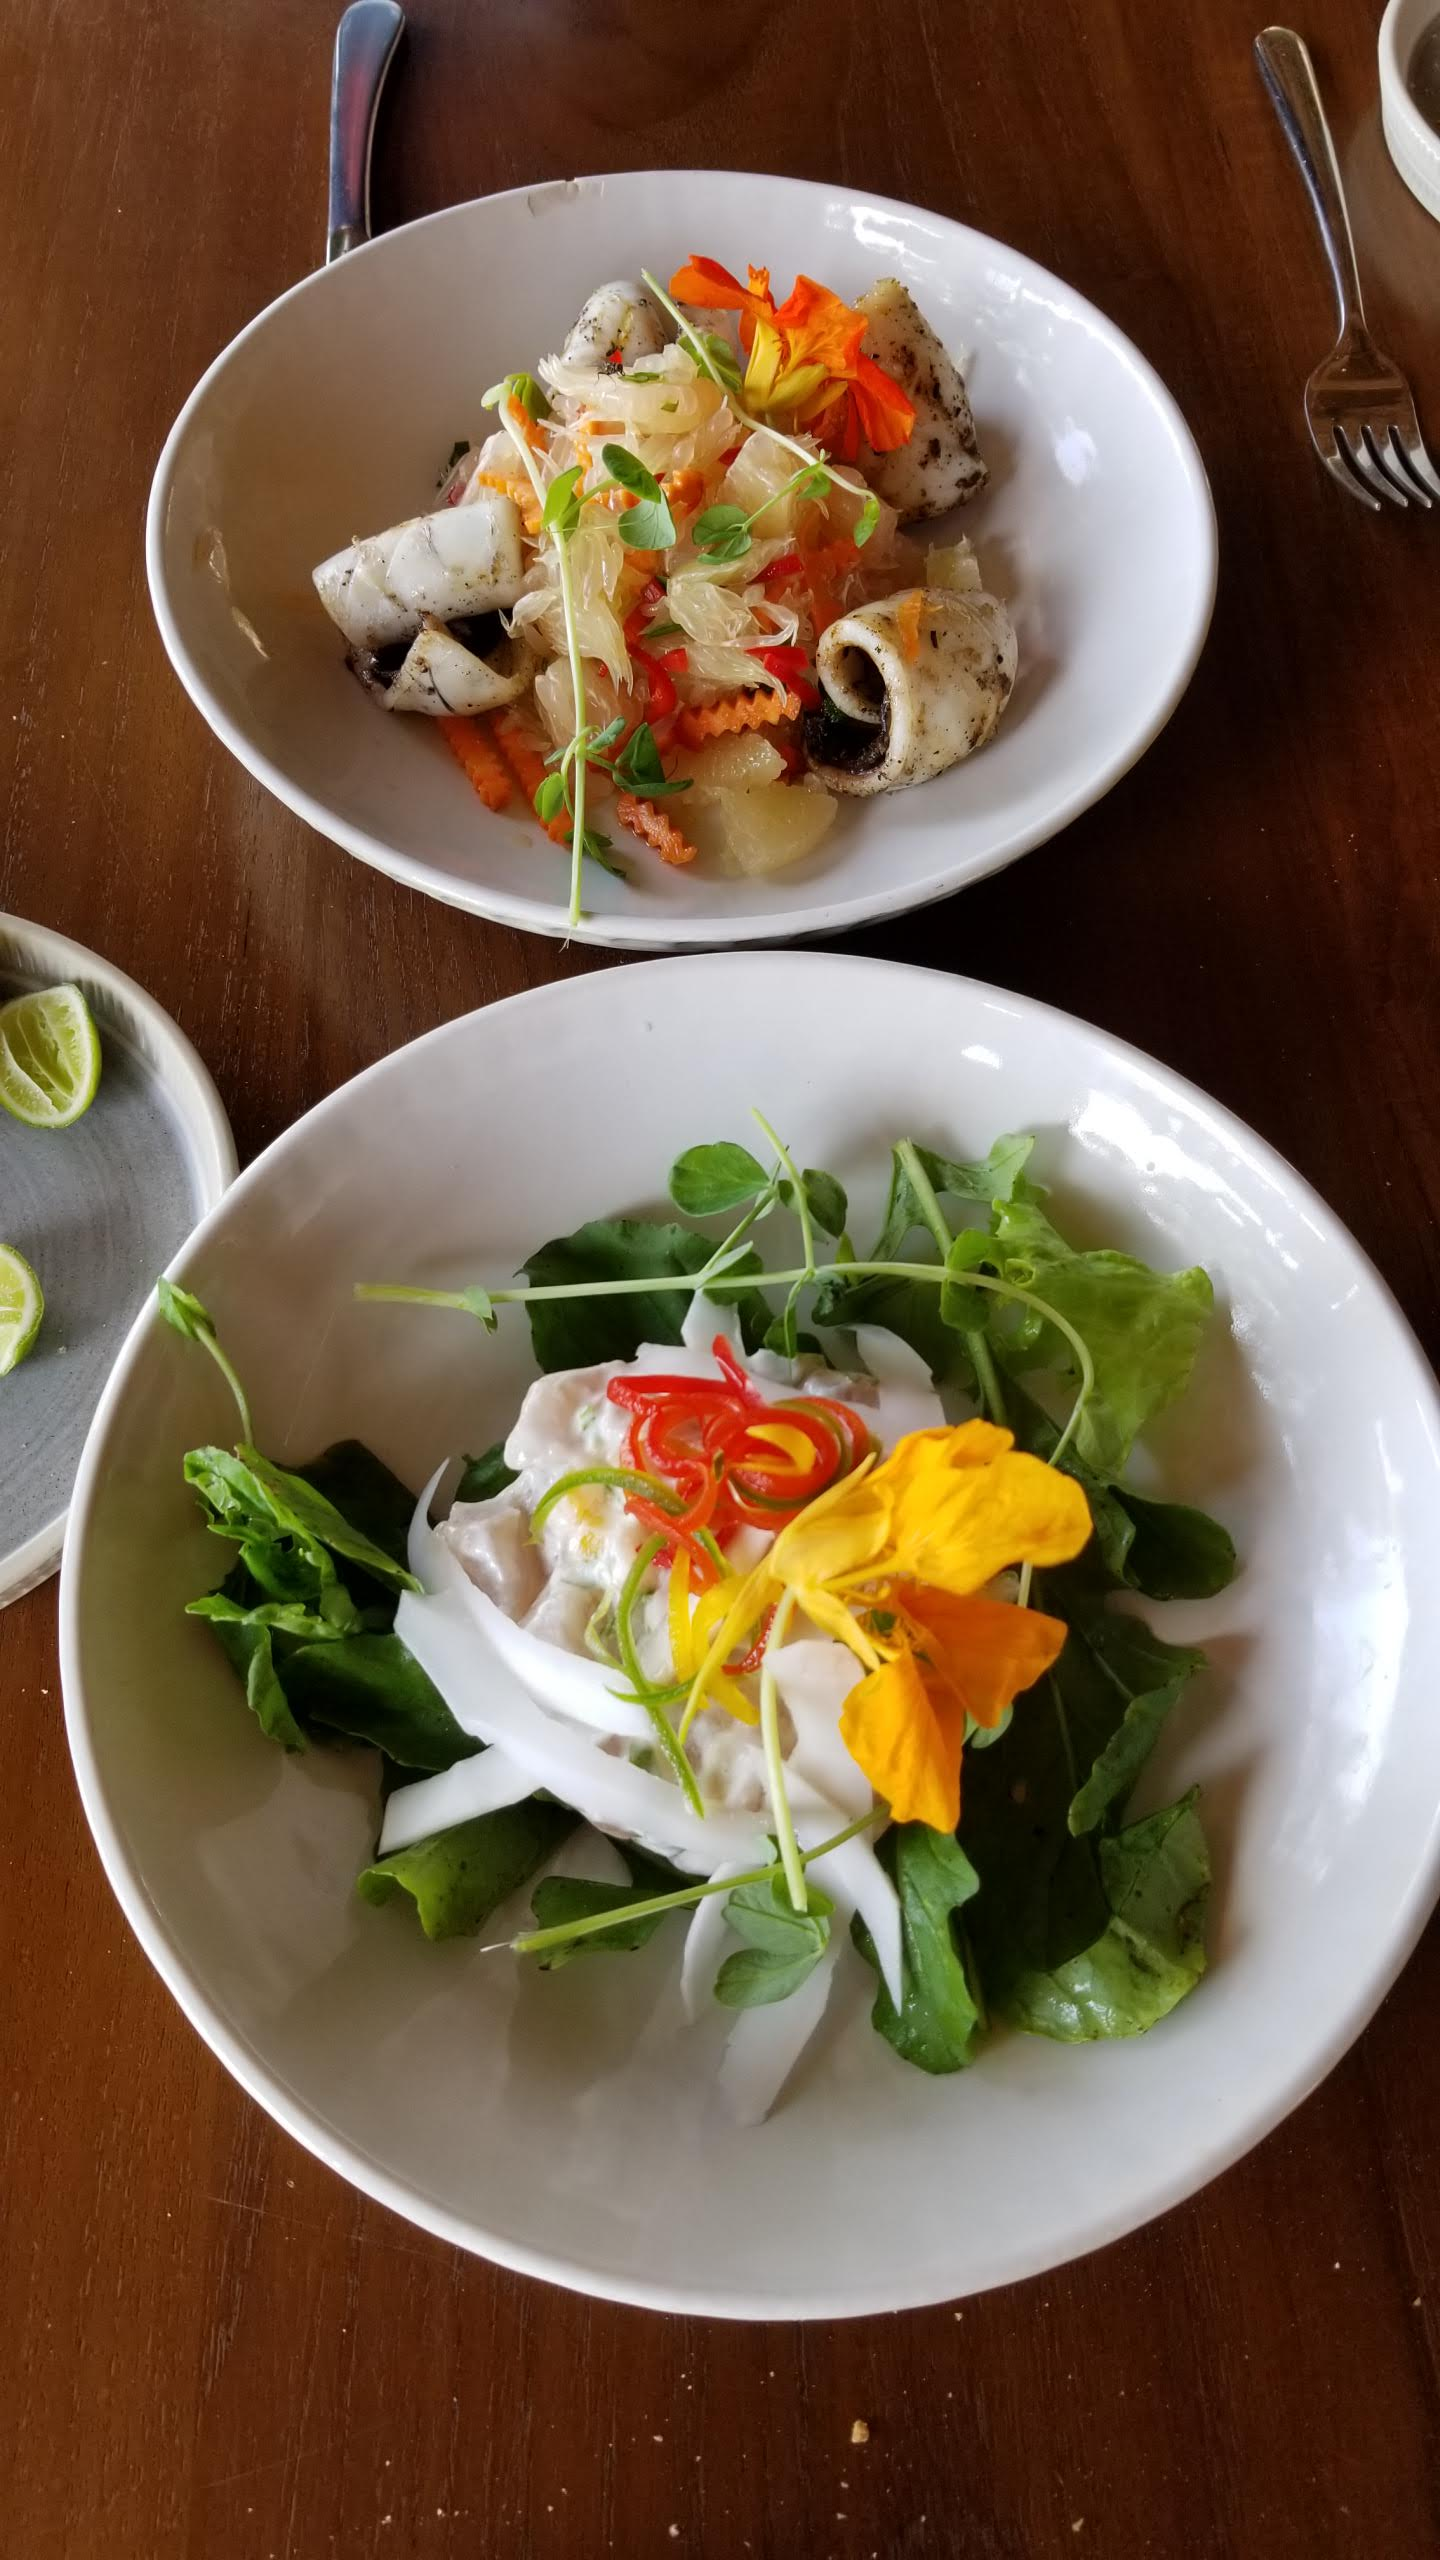 Squid salad and ceviche